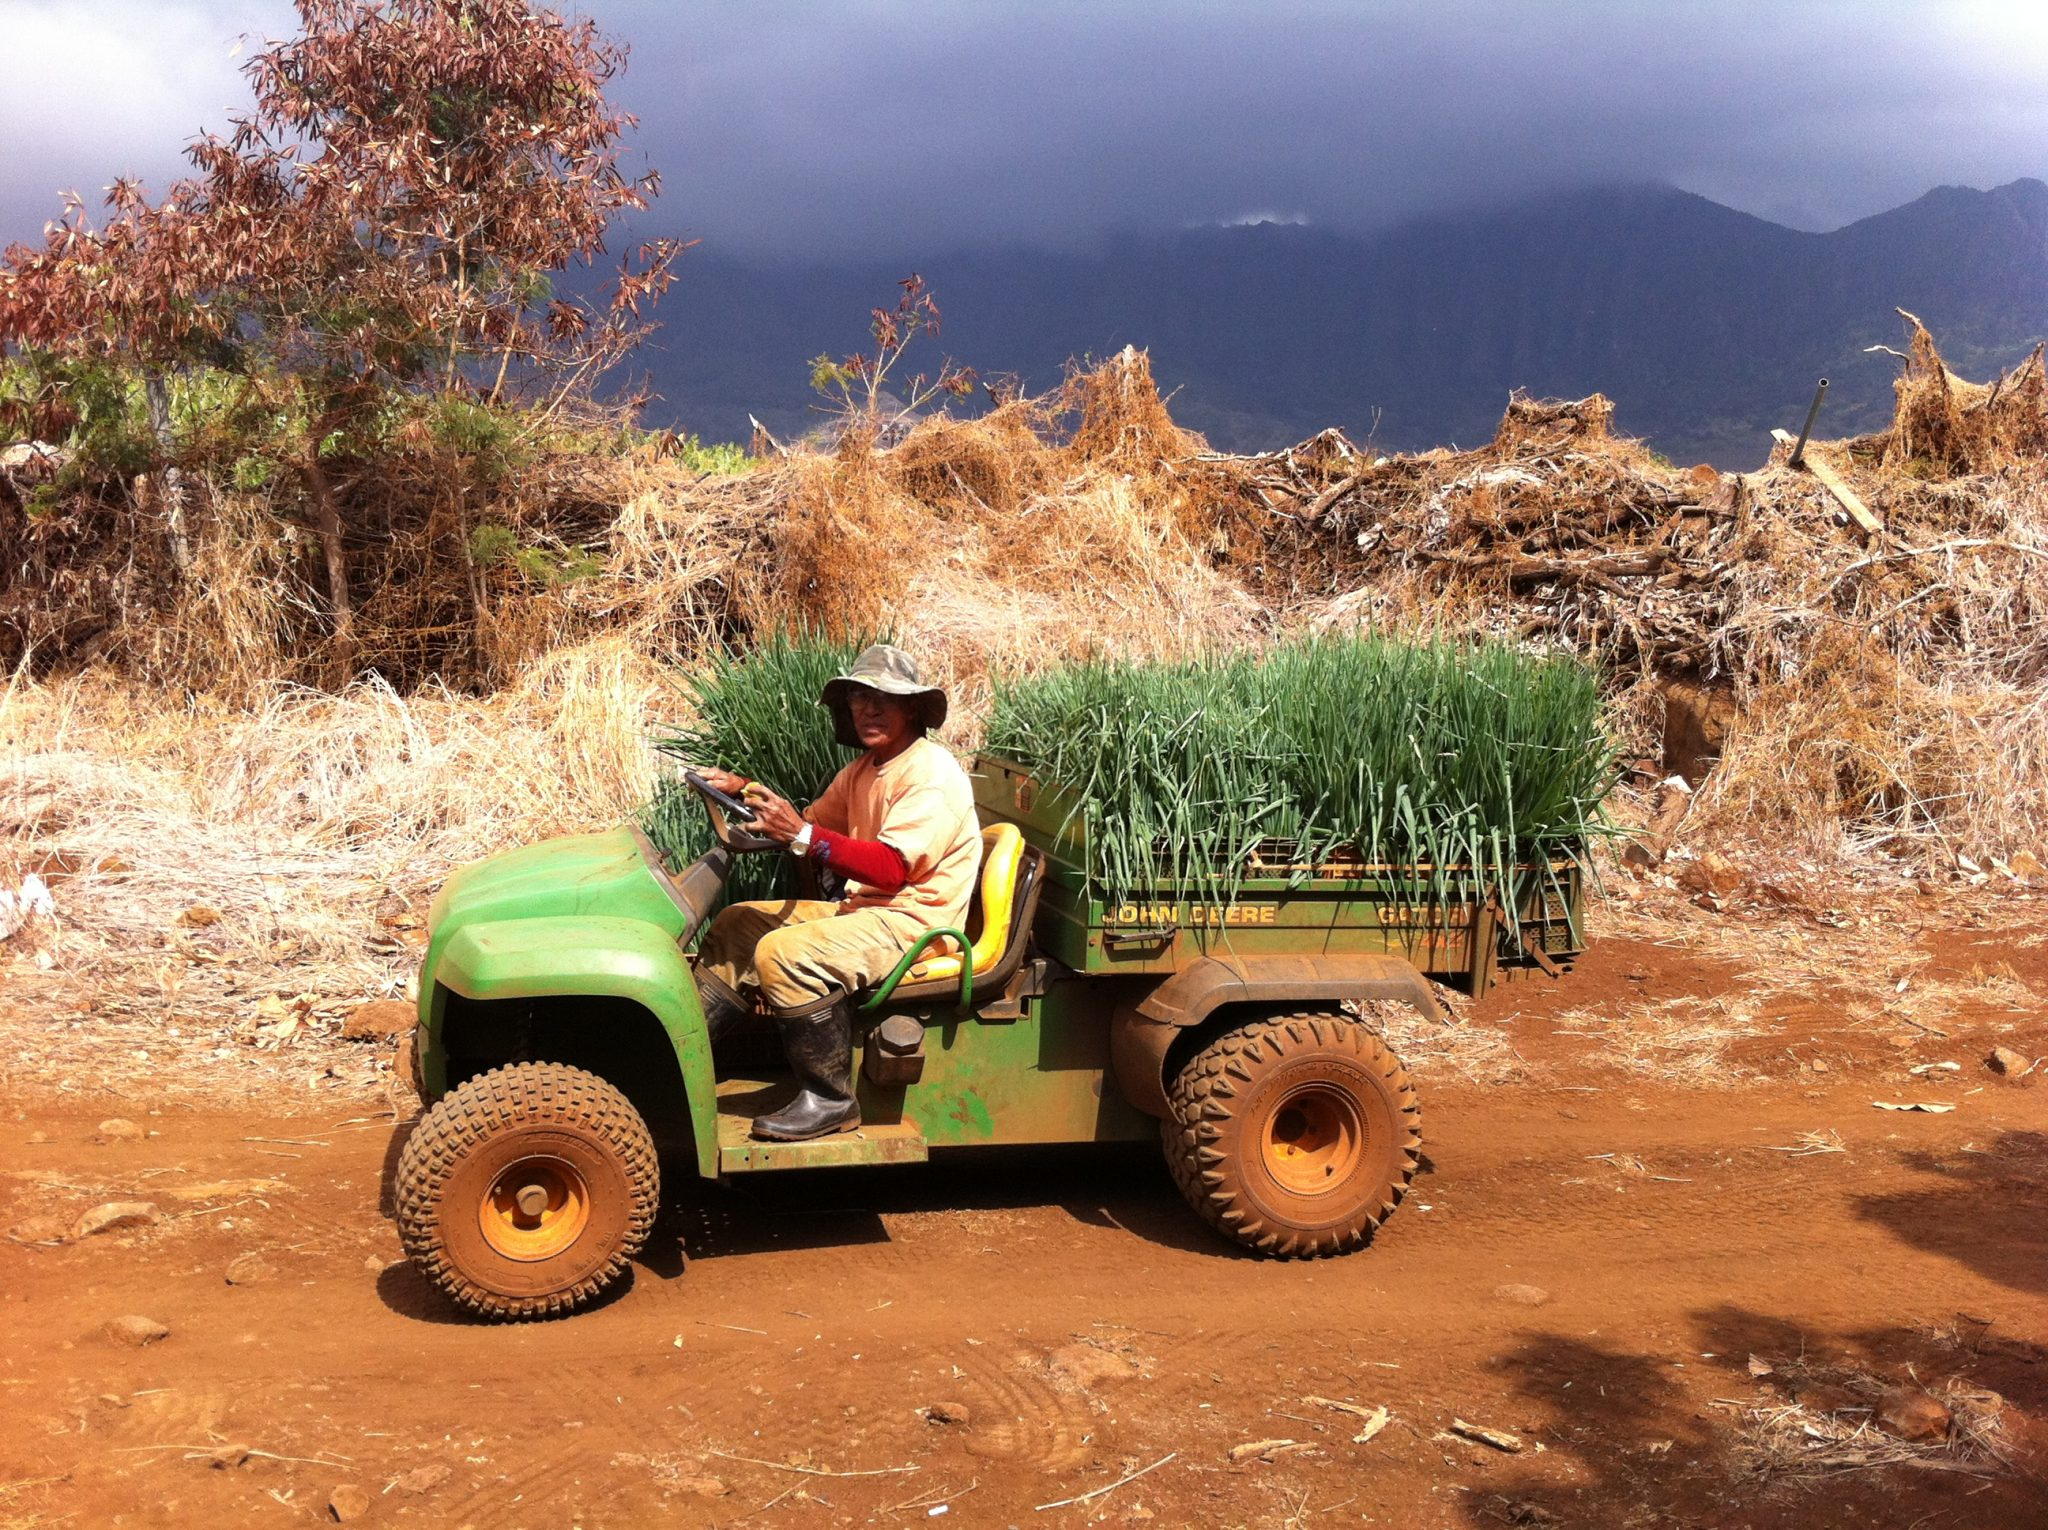 Green Onion Farmer In Hawaii, Waianae - What Should I Do Before Quitting My Job? 15 Things To Consider